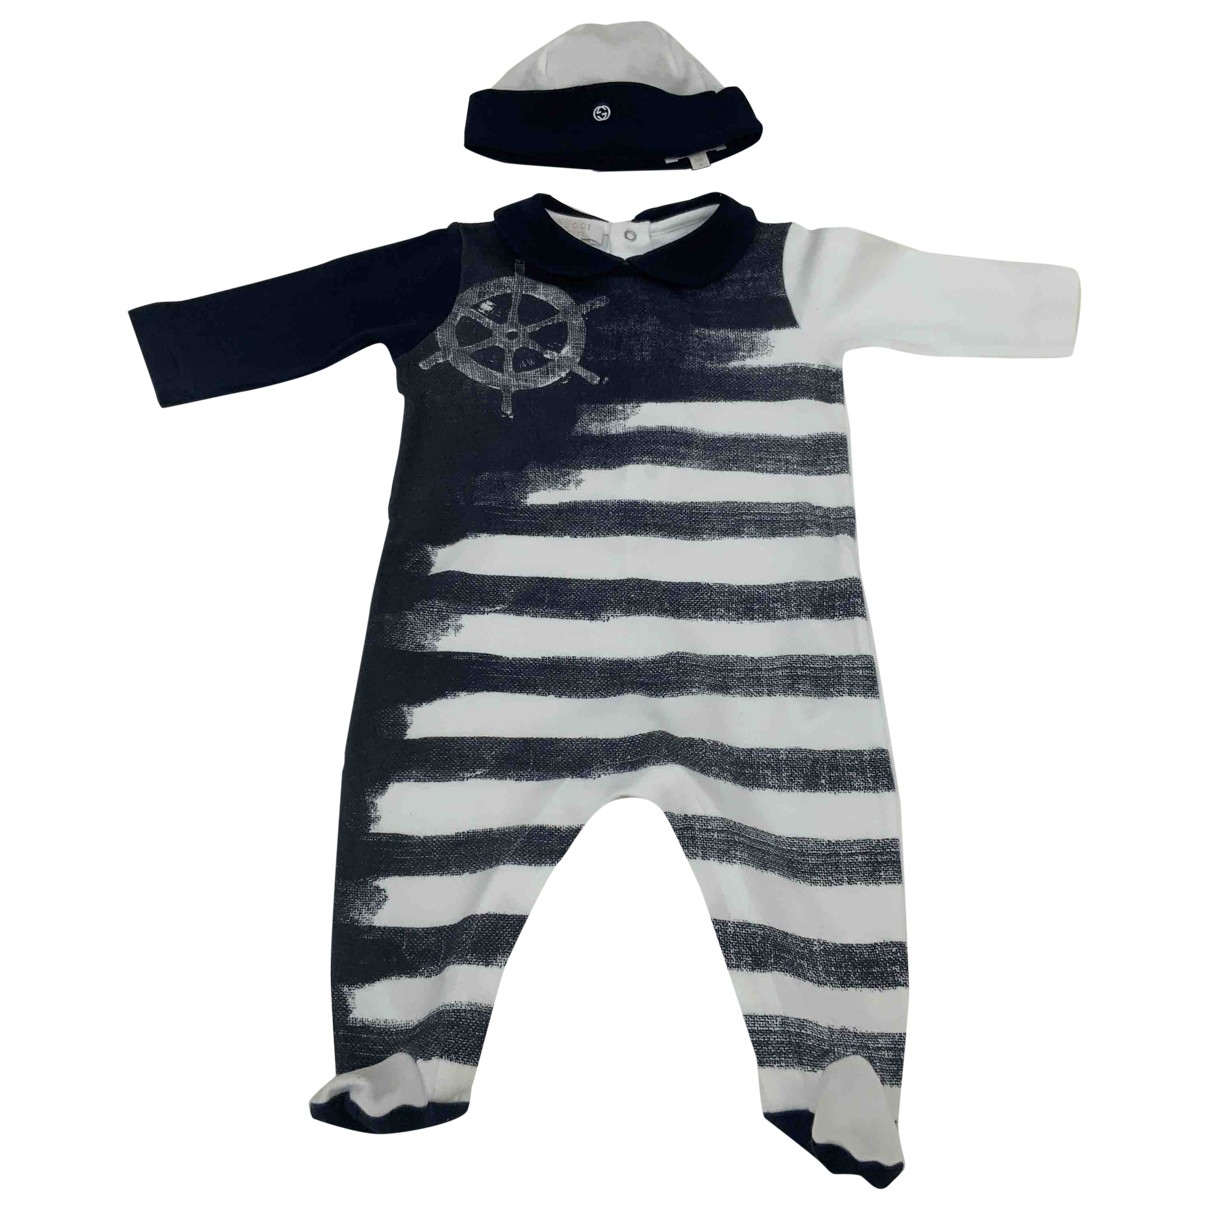 Gucci \N White Cotton Outfits for Kids 3 months - until 24 inches UK